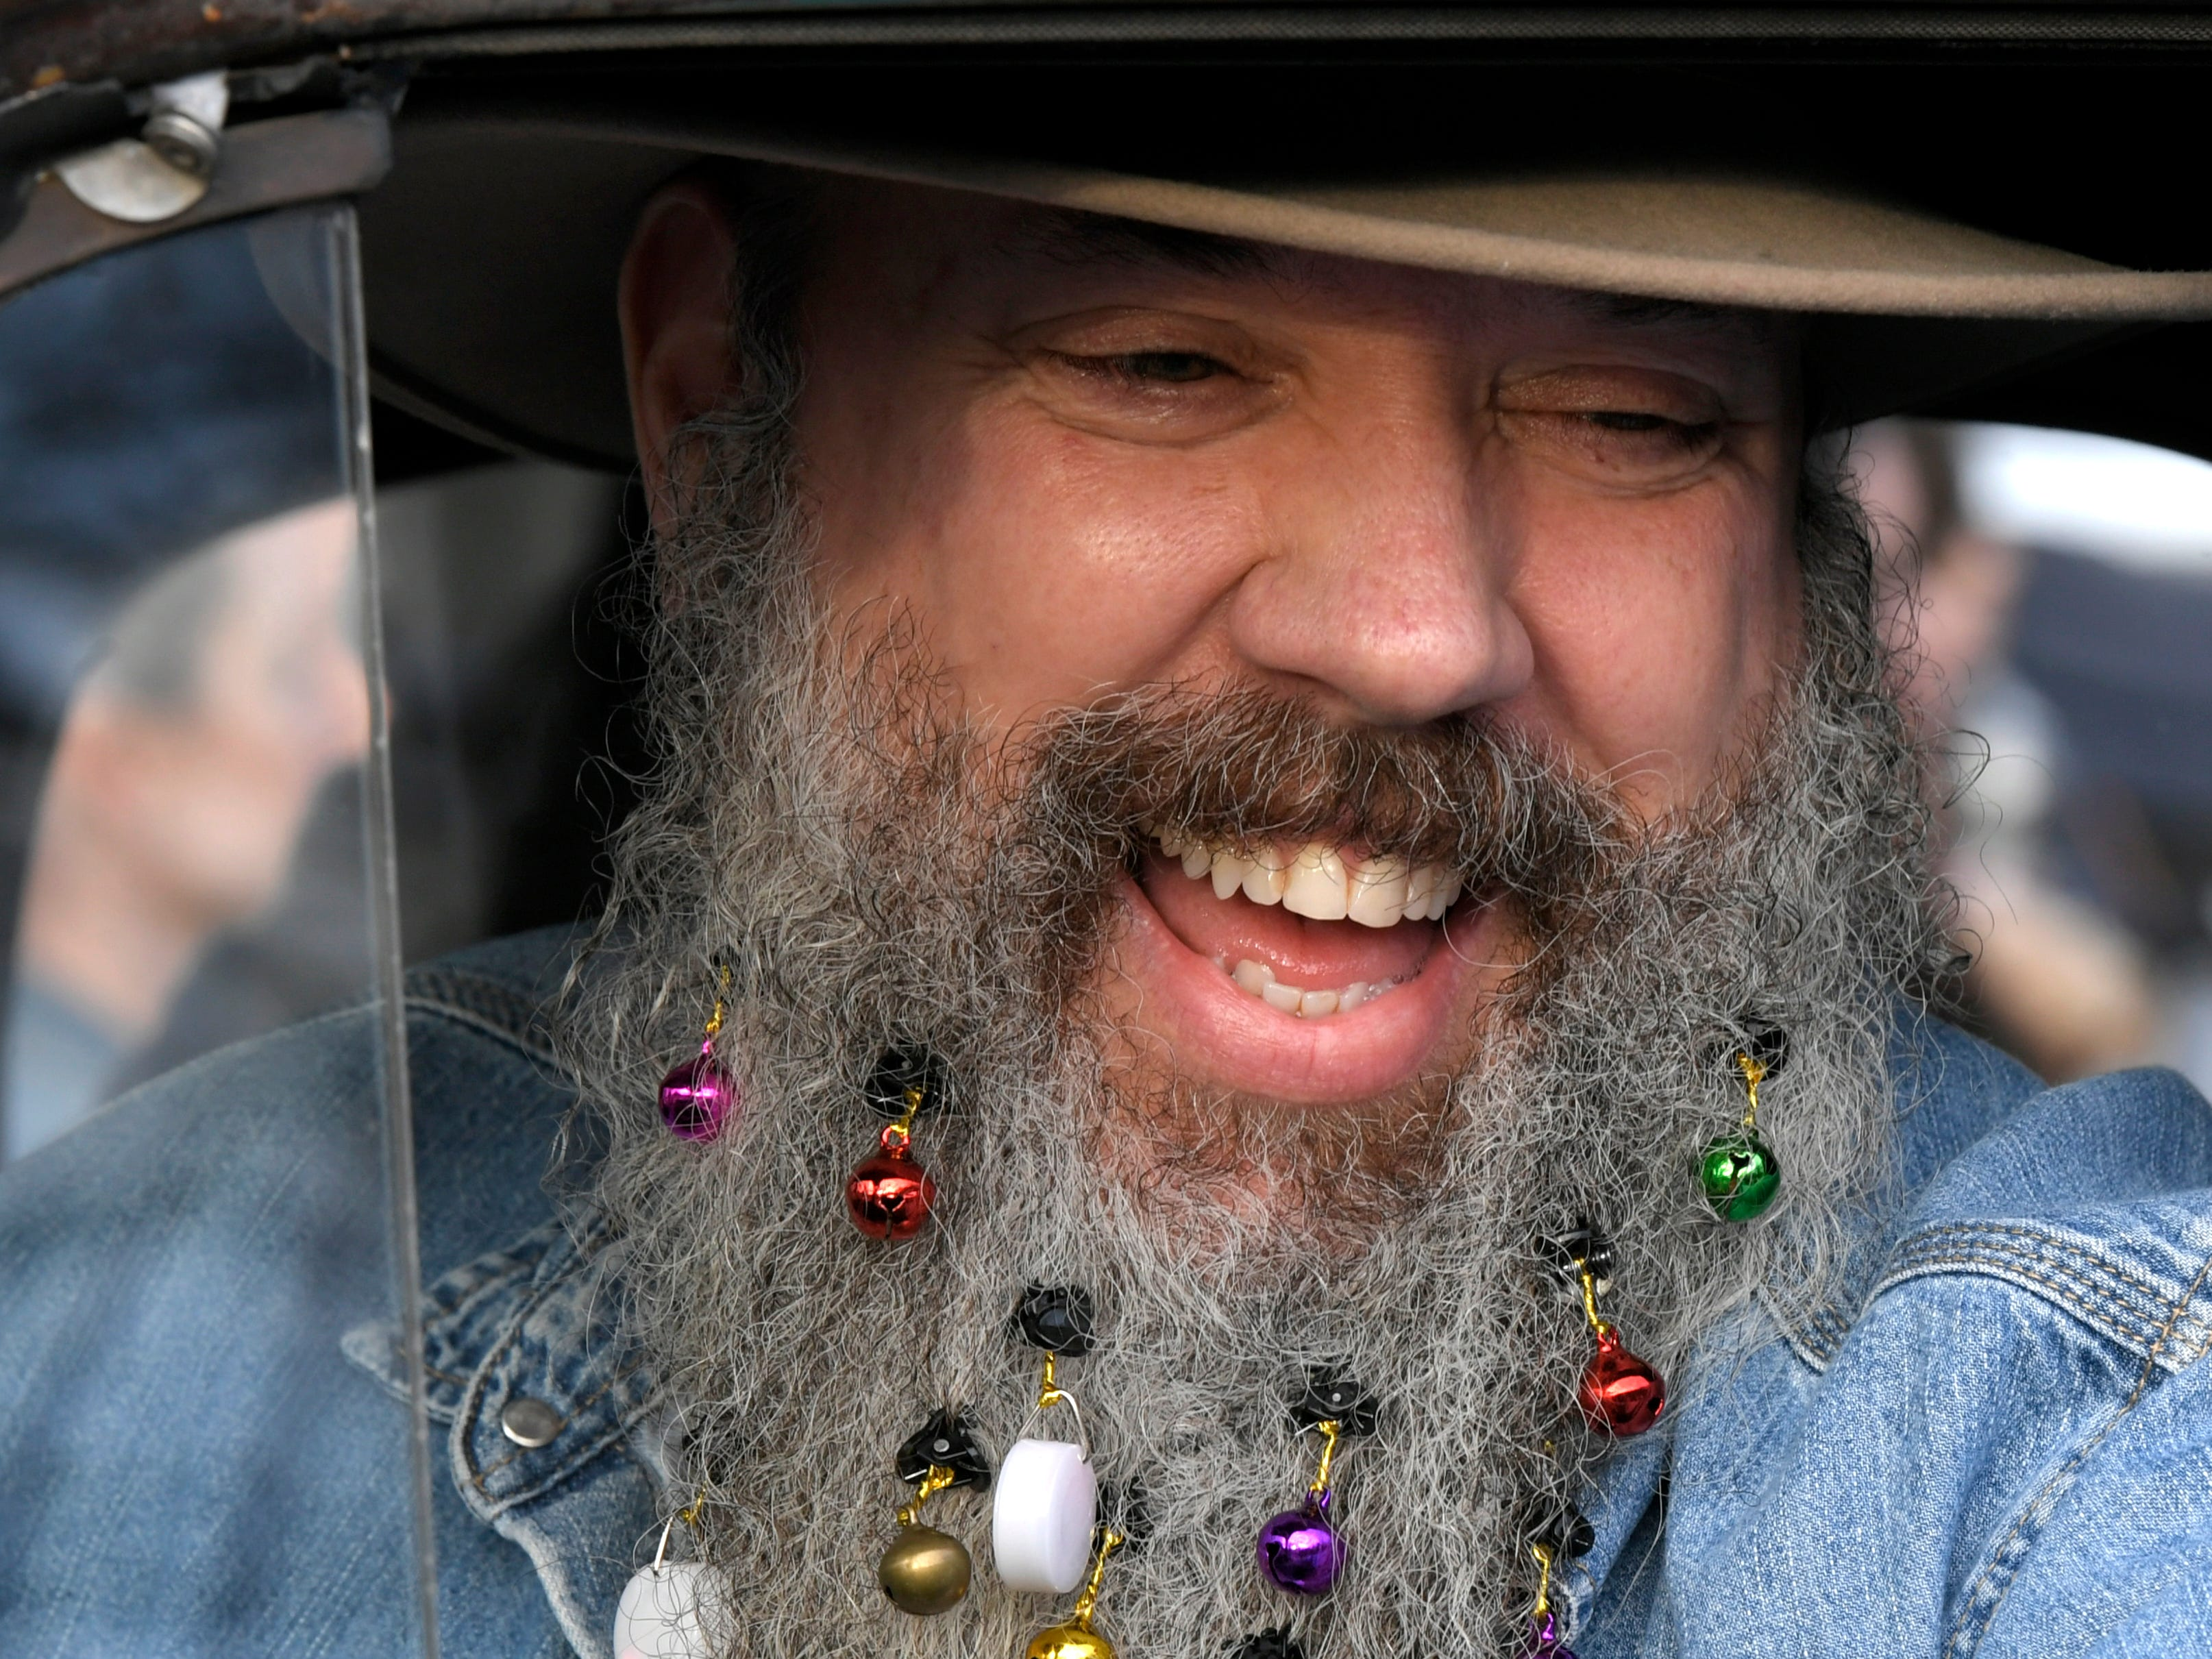 Robert Taylor decorated his beard for the Leipers Fork Christmas Parade on Saturday, Dec. 15, 2018.